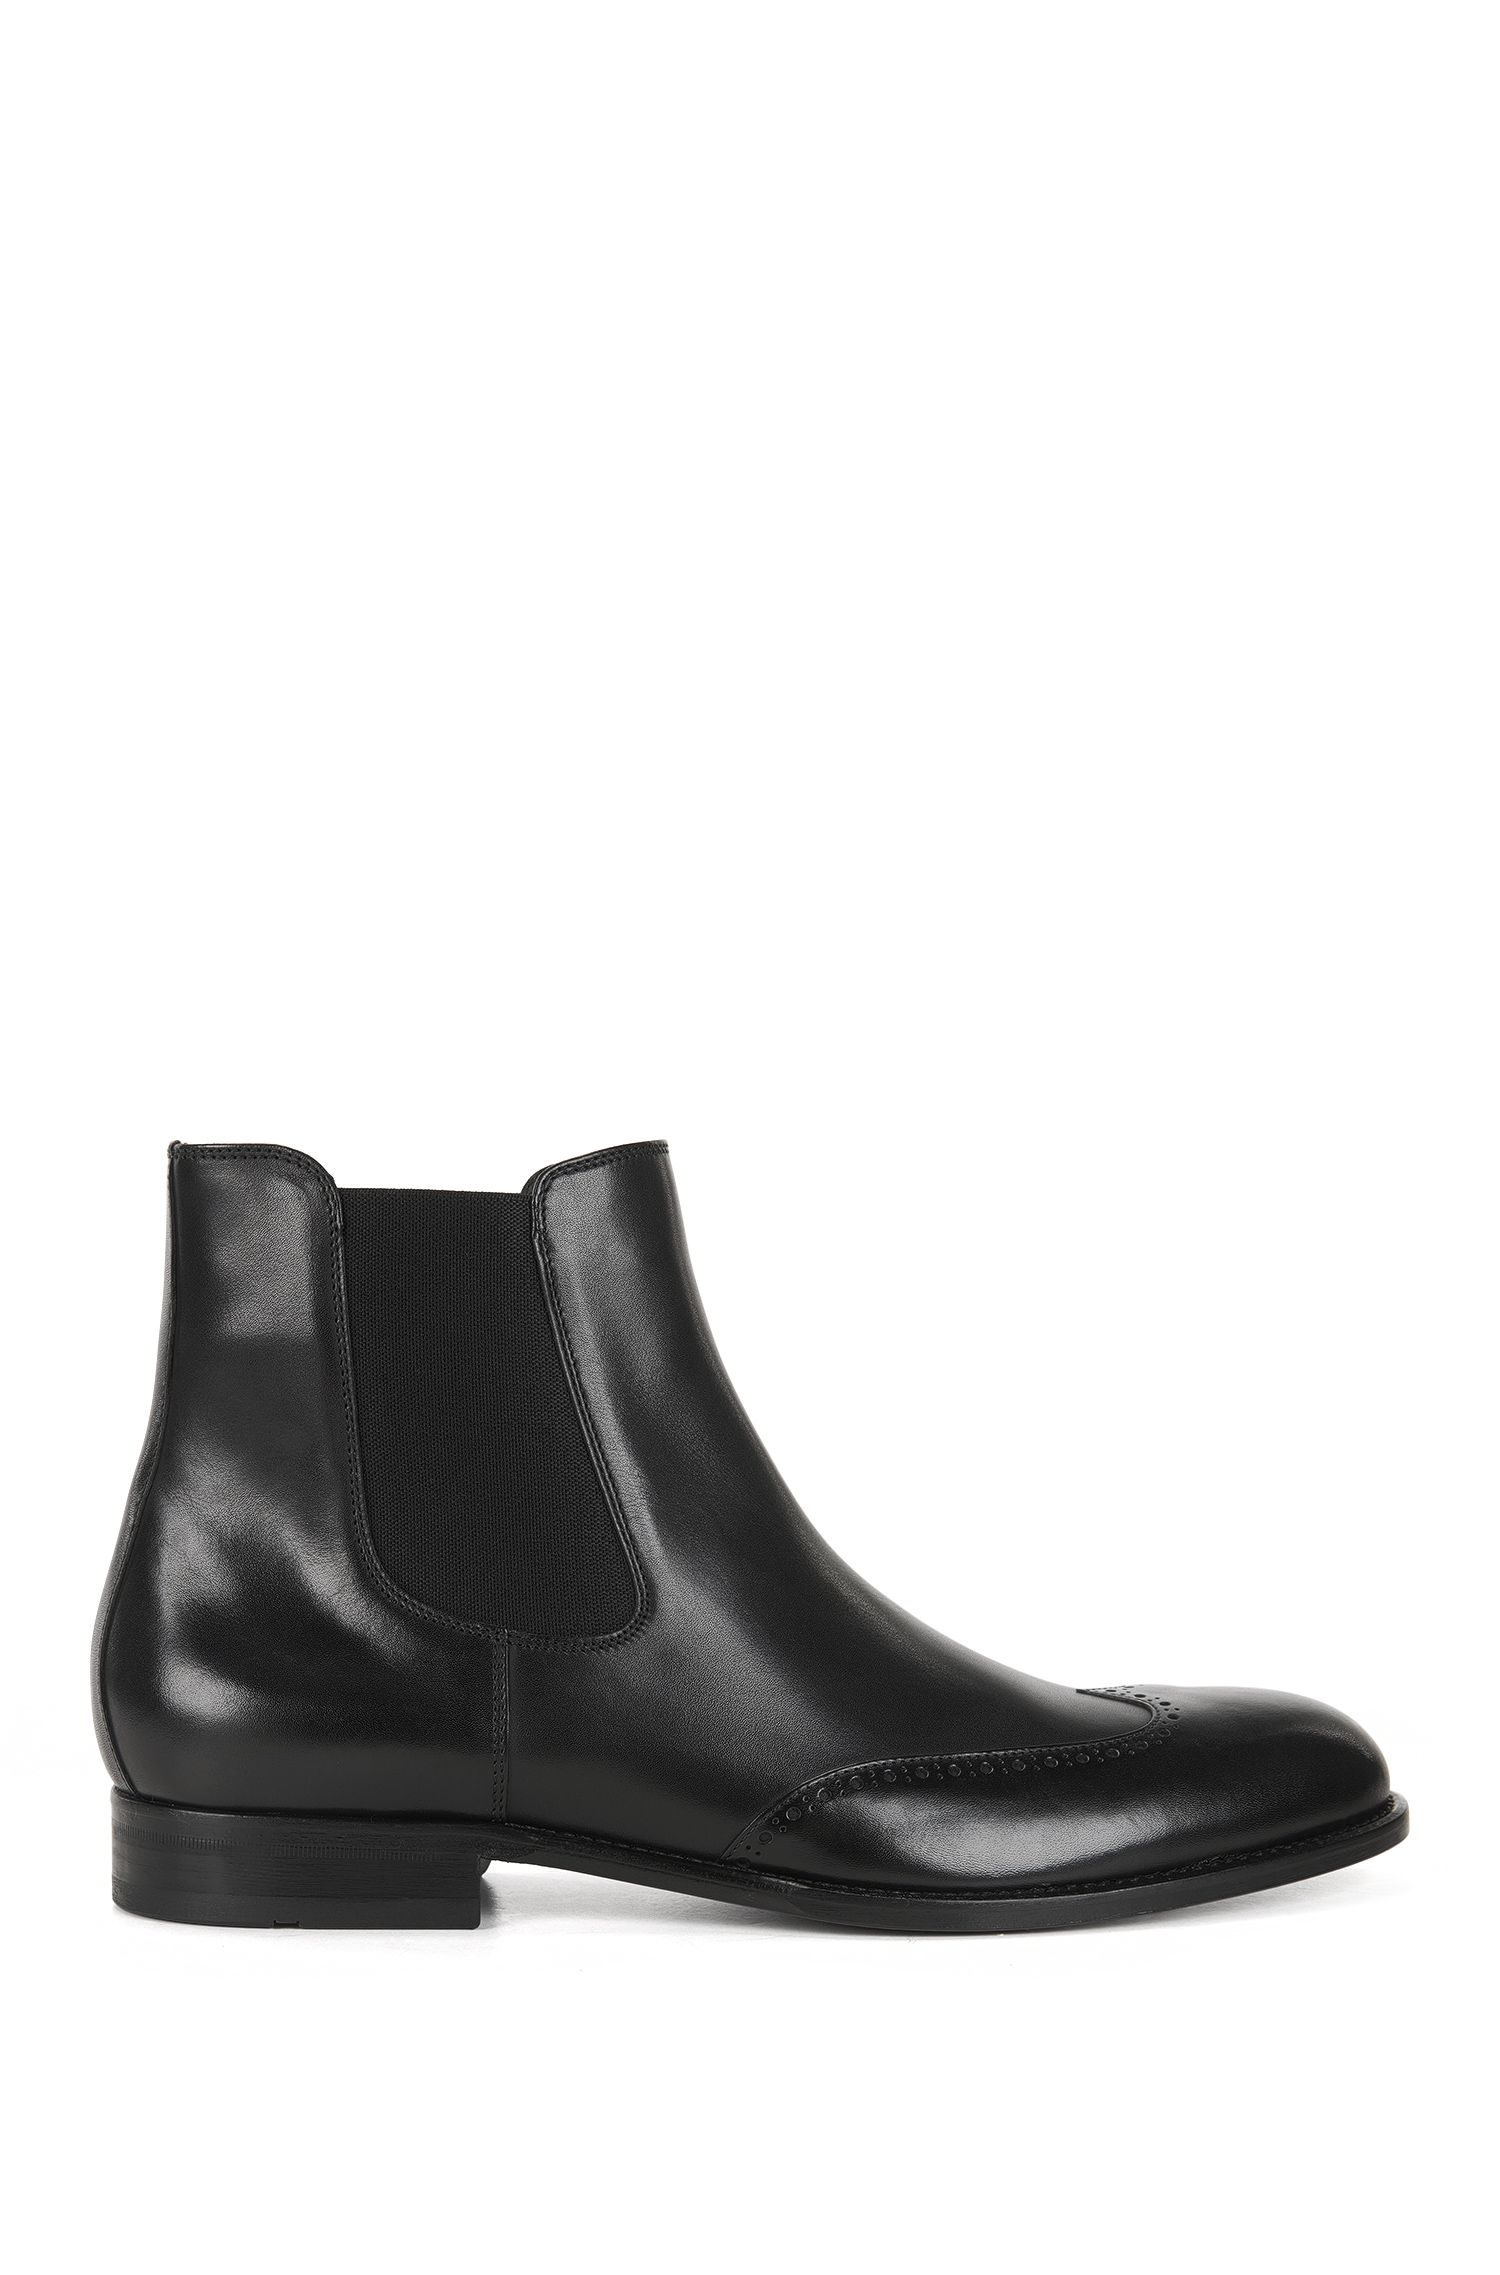 Blind Brogue Leather Chelsea Boot | Manhattan Cheb Wtb